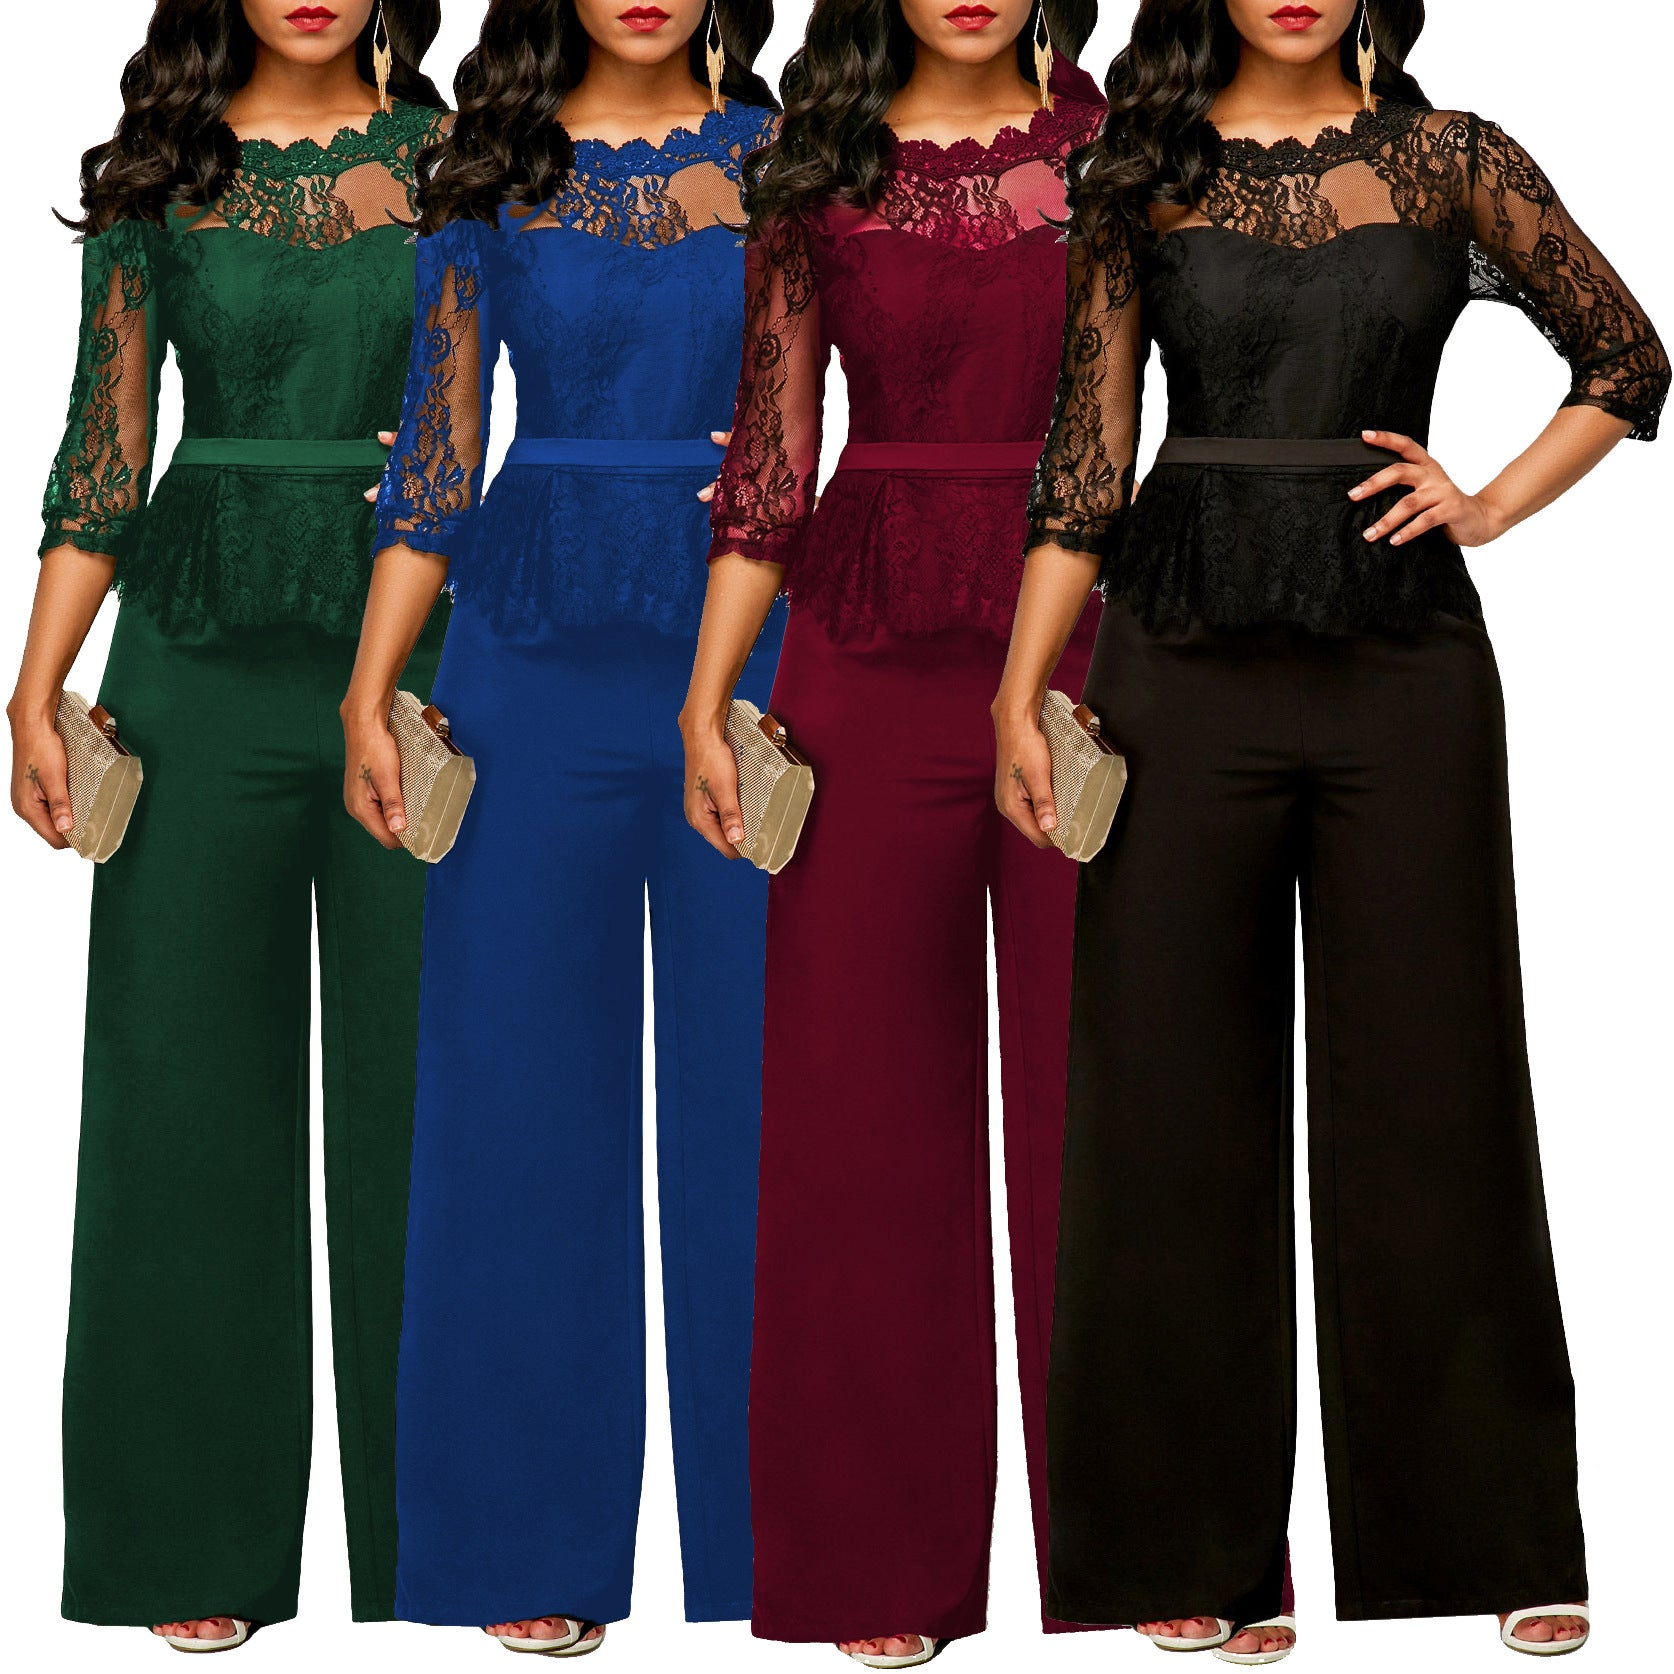 41dd2cf496c9 New Women Jumpsuits 2018 Spring Summer Sexy Lace Jumpsuit Office Work  Fashion Ruffles Plus Size 2XL ...